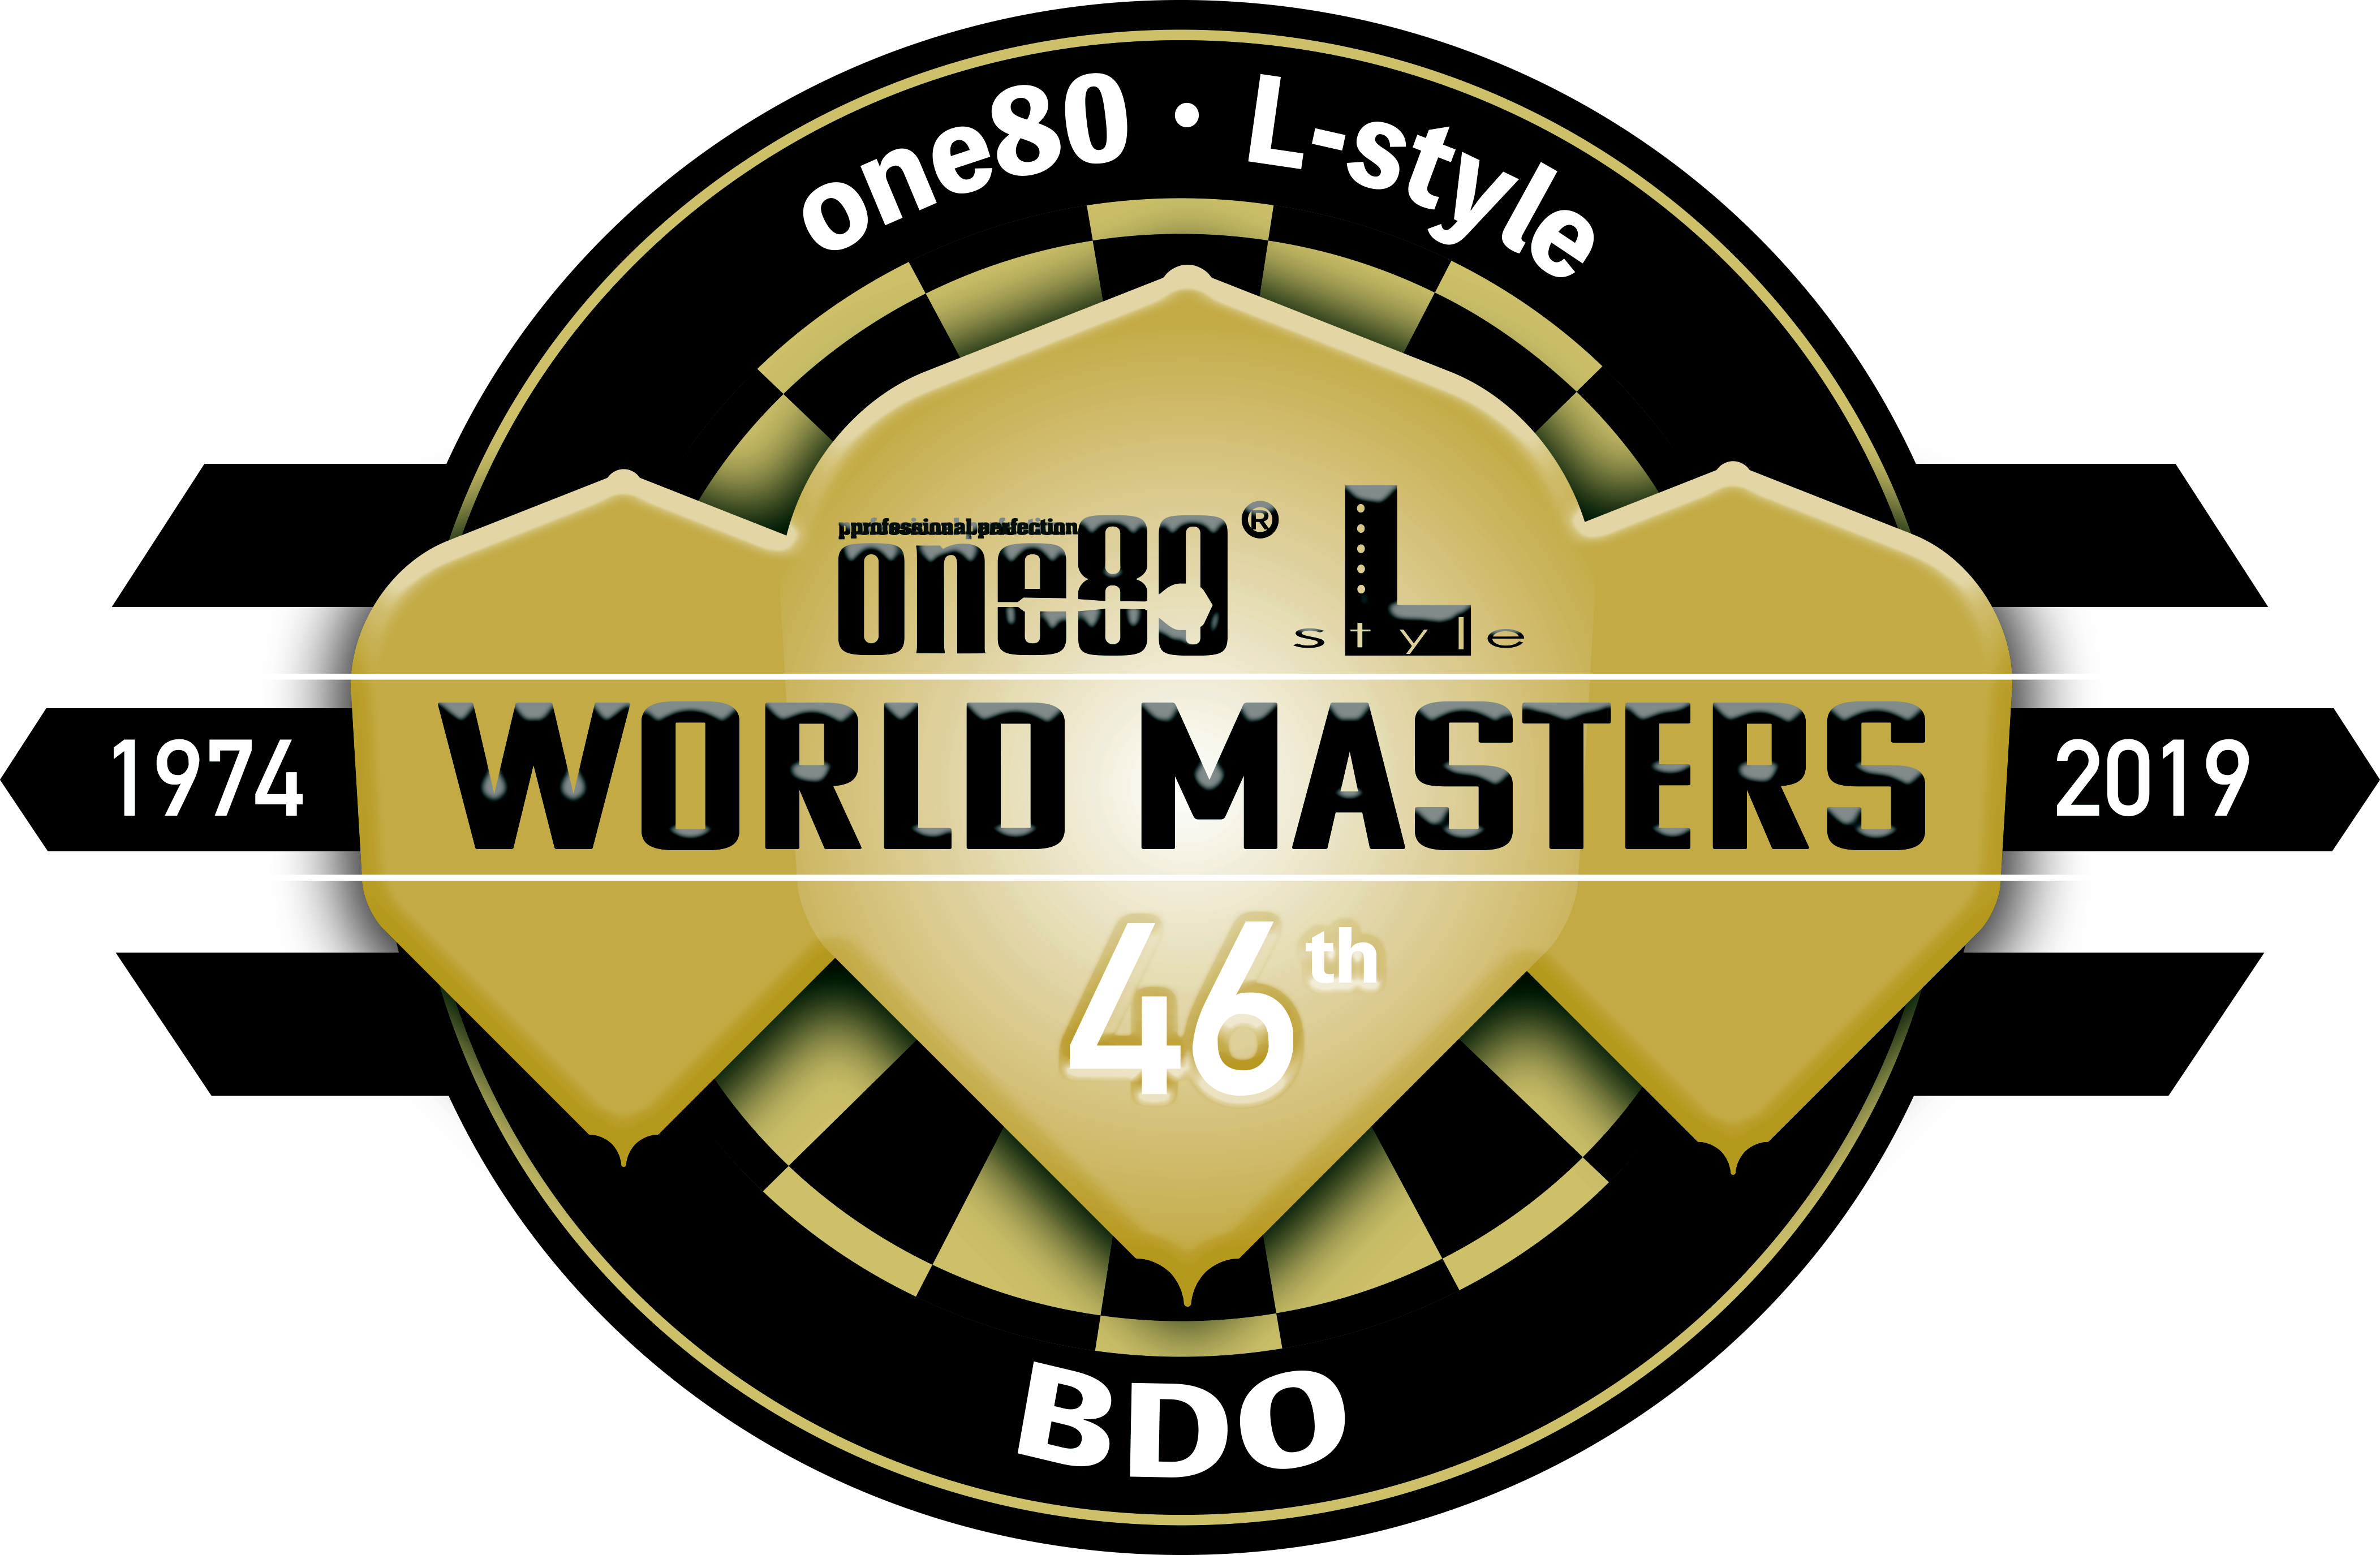 Livestream: One80 L-Style World Masters 2019